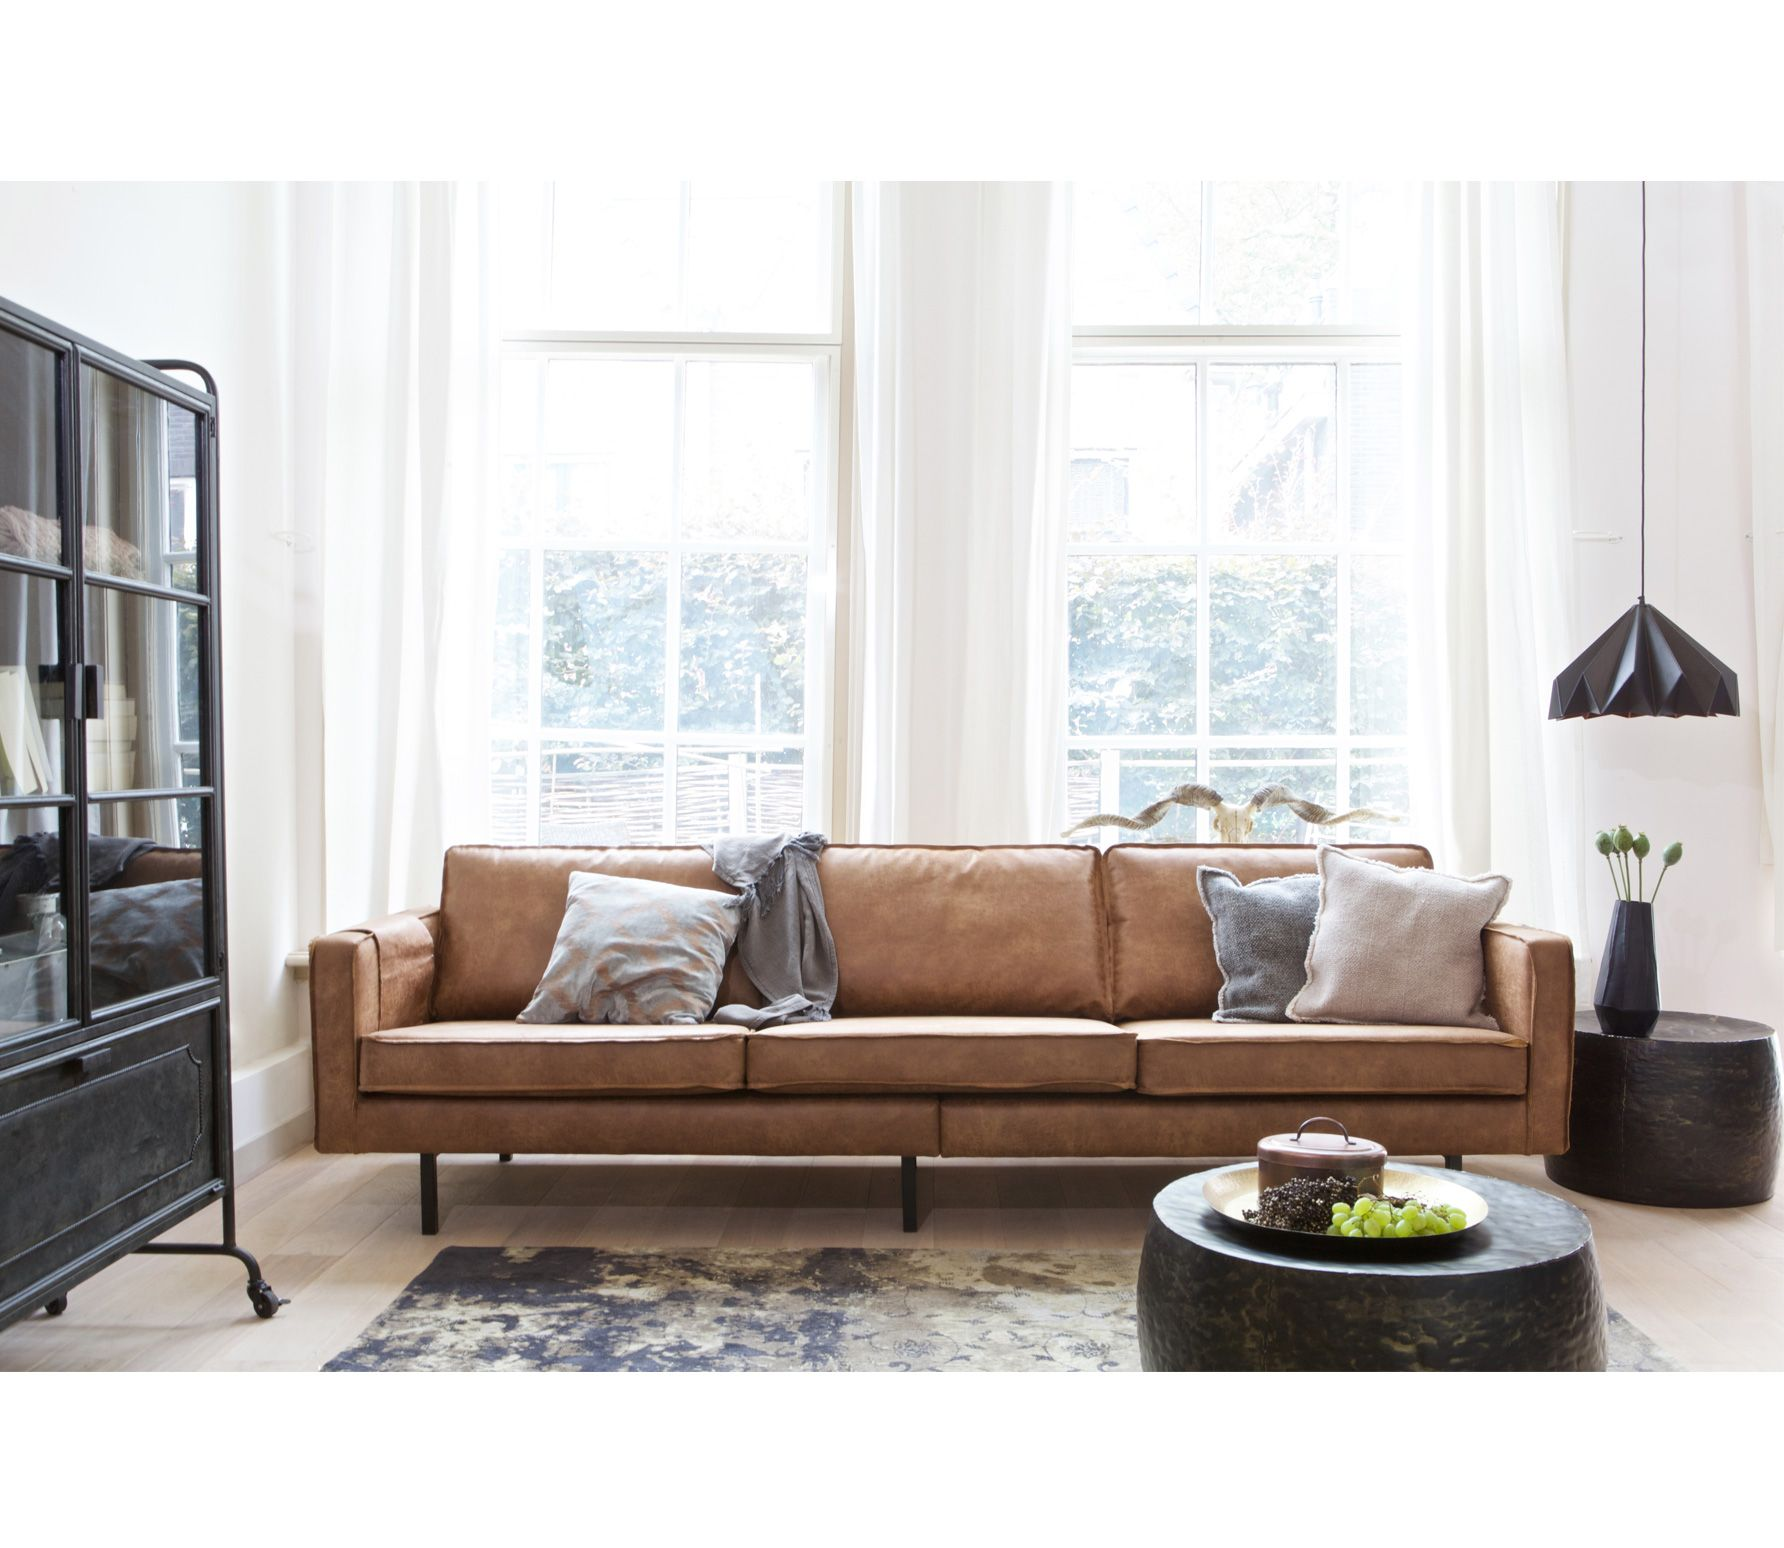 Design Bank 3 Zits.Voorbeeld Van Rodeo Bank 3 Zits Cognac Bepurehome Interieur Sofa